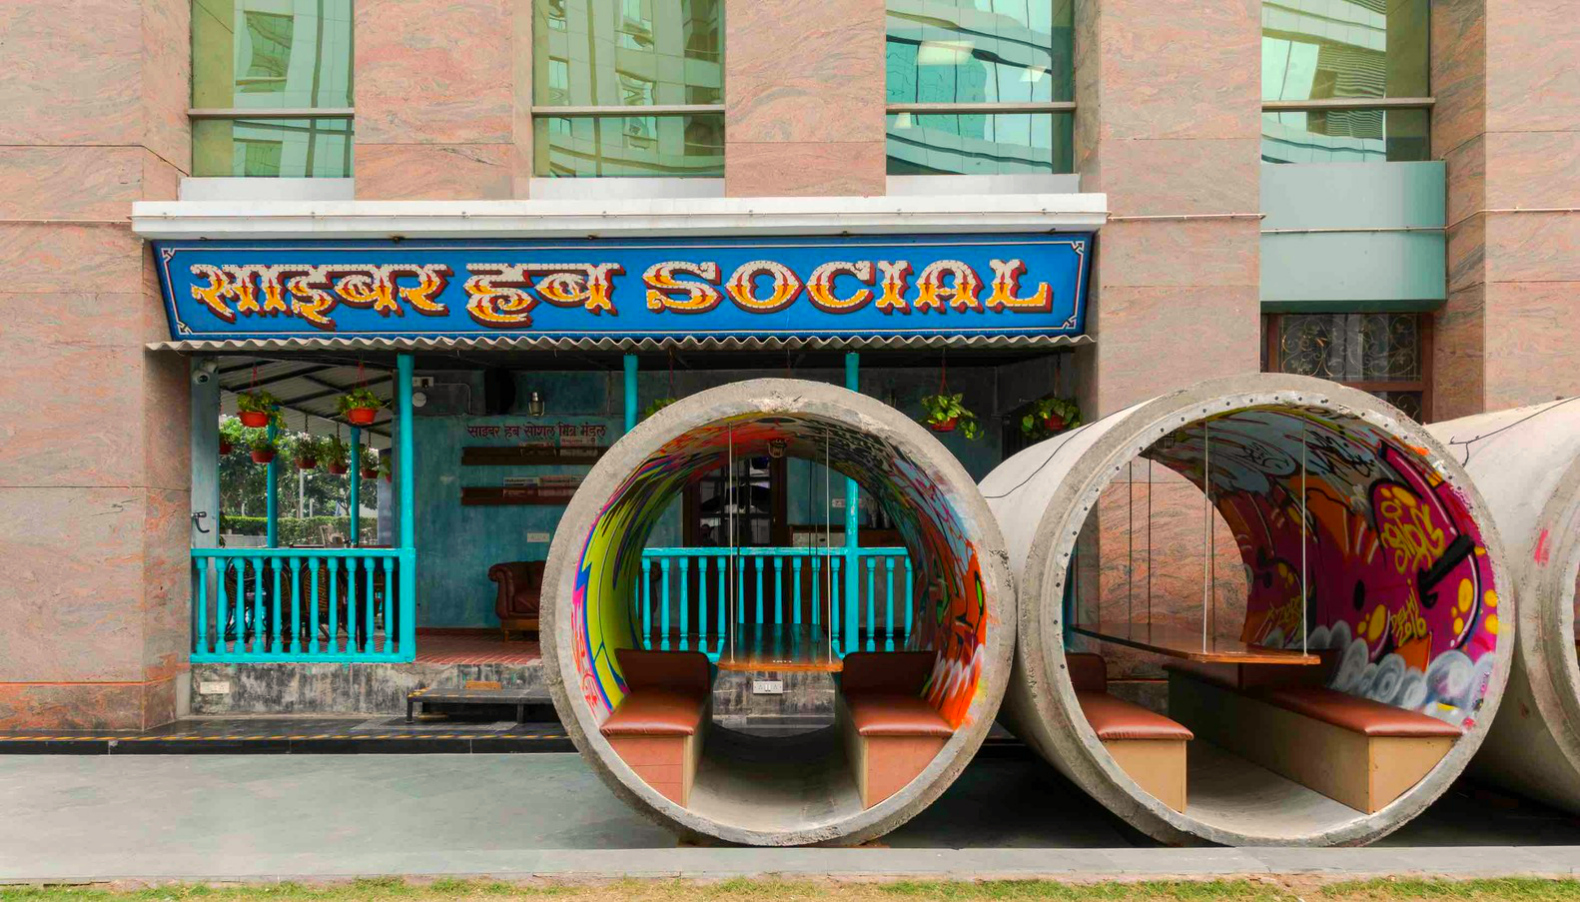 Cyber Hub Studio Upcycled Urban Cafe In India Modeled